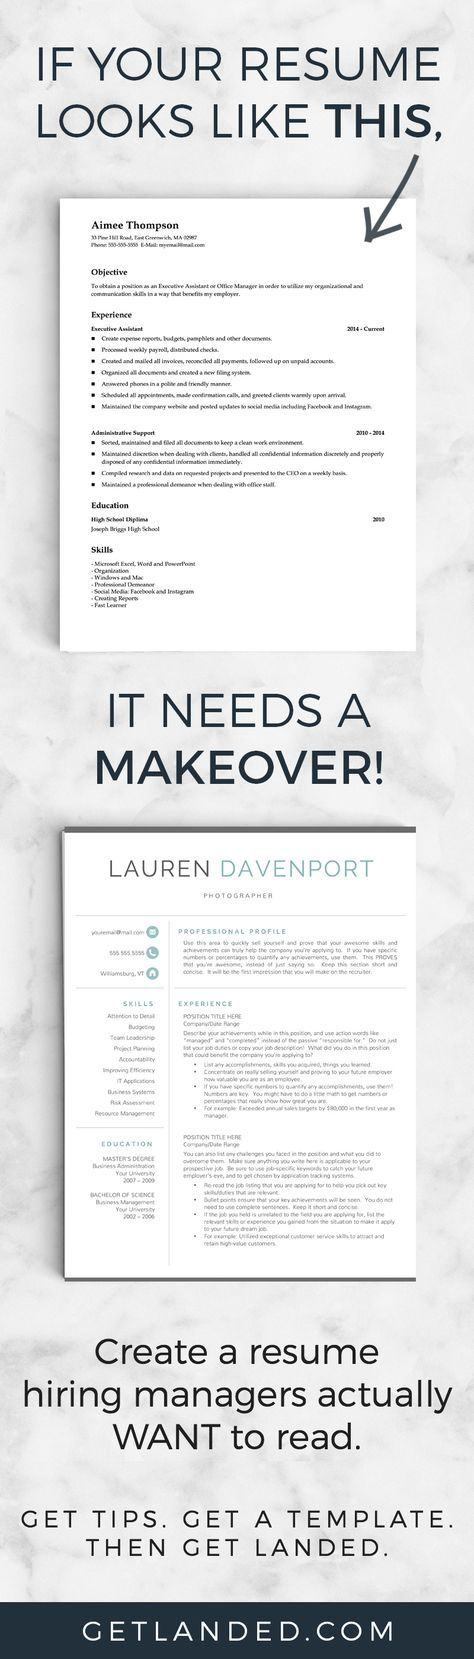 25+ unique Professional resume writers ideas on Pinterest Resume - examples of good resumes